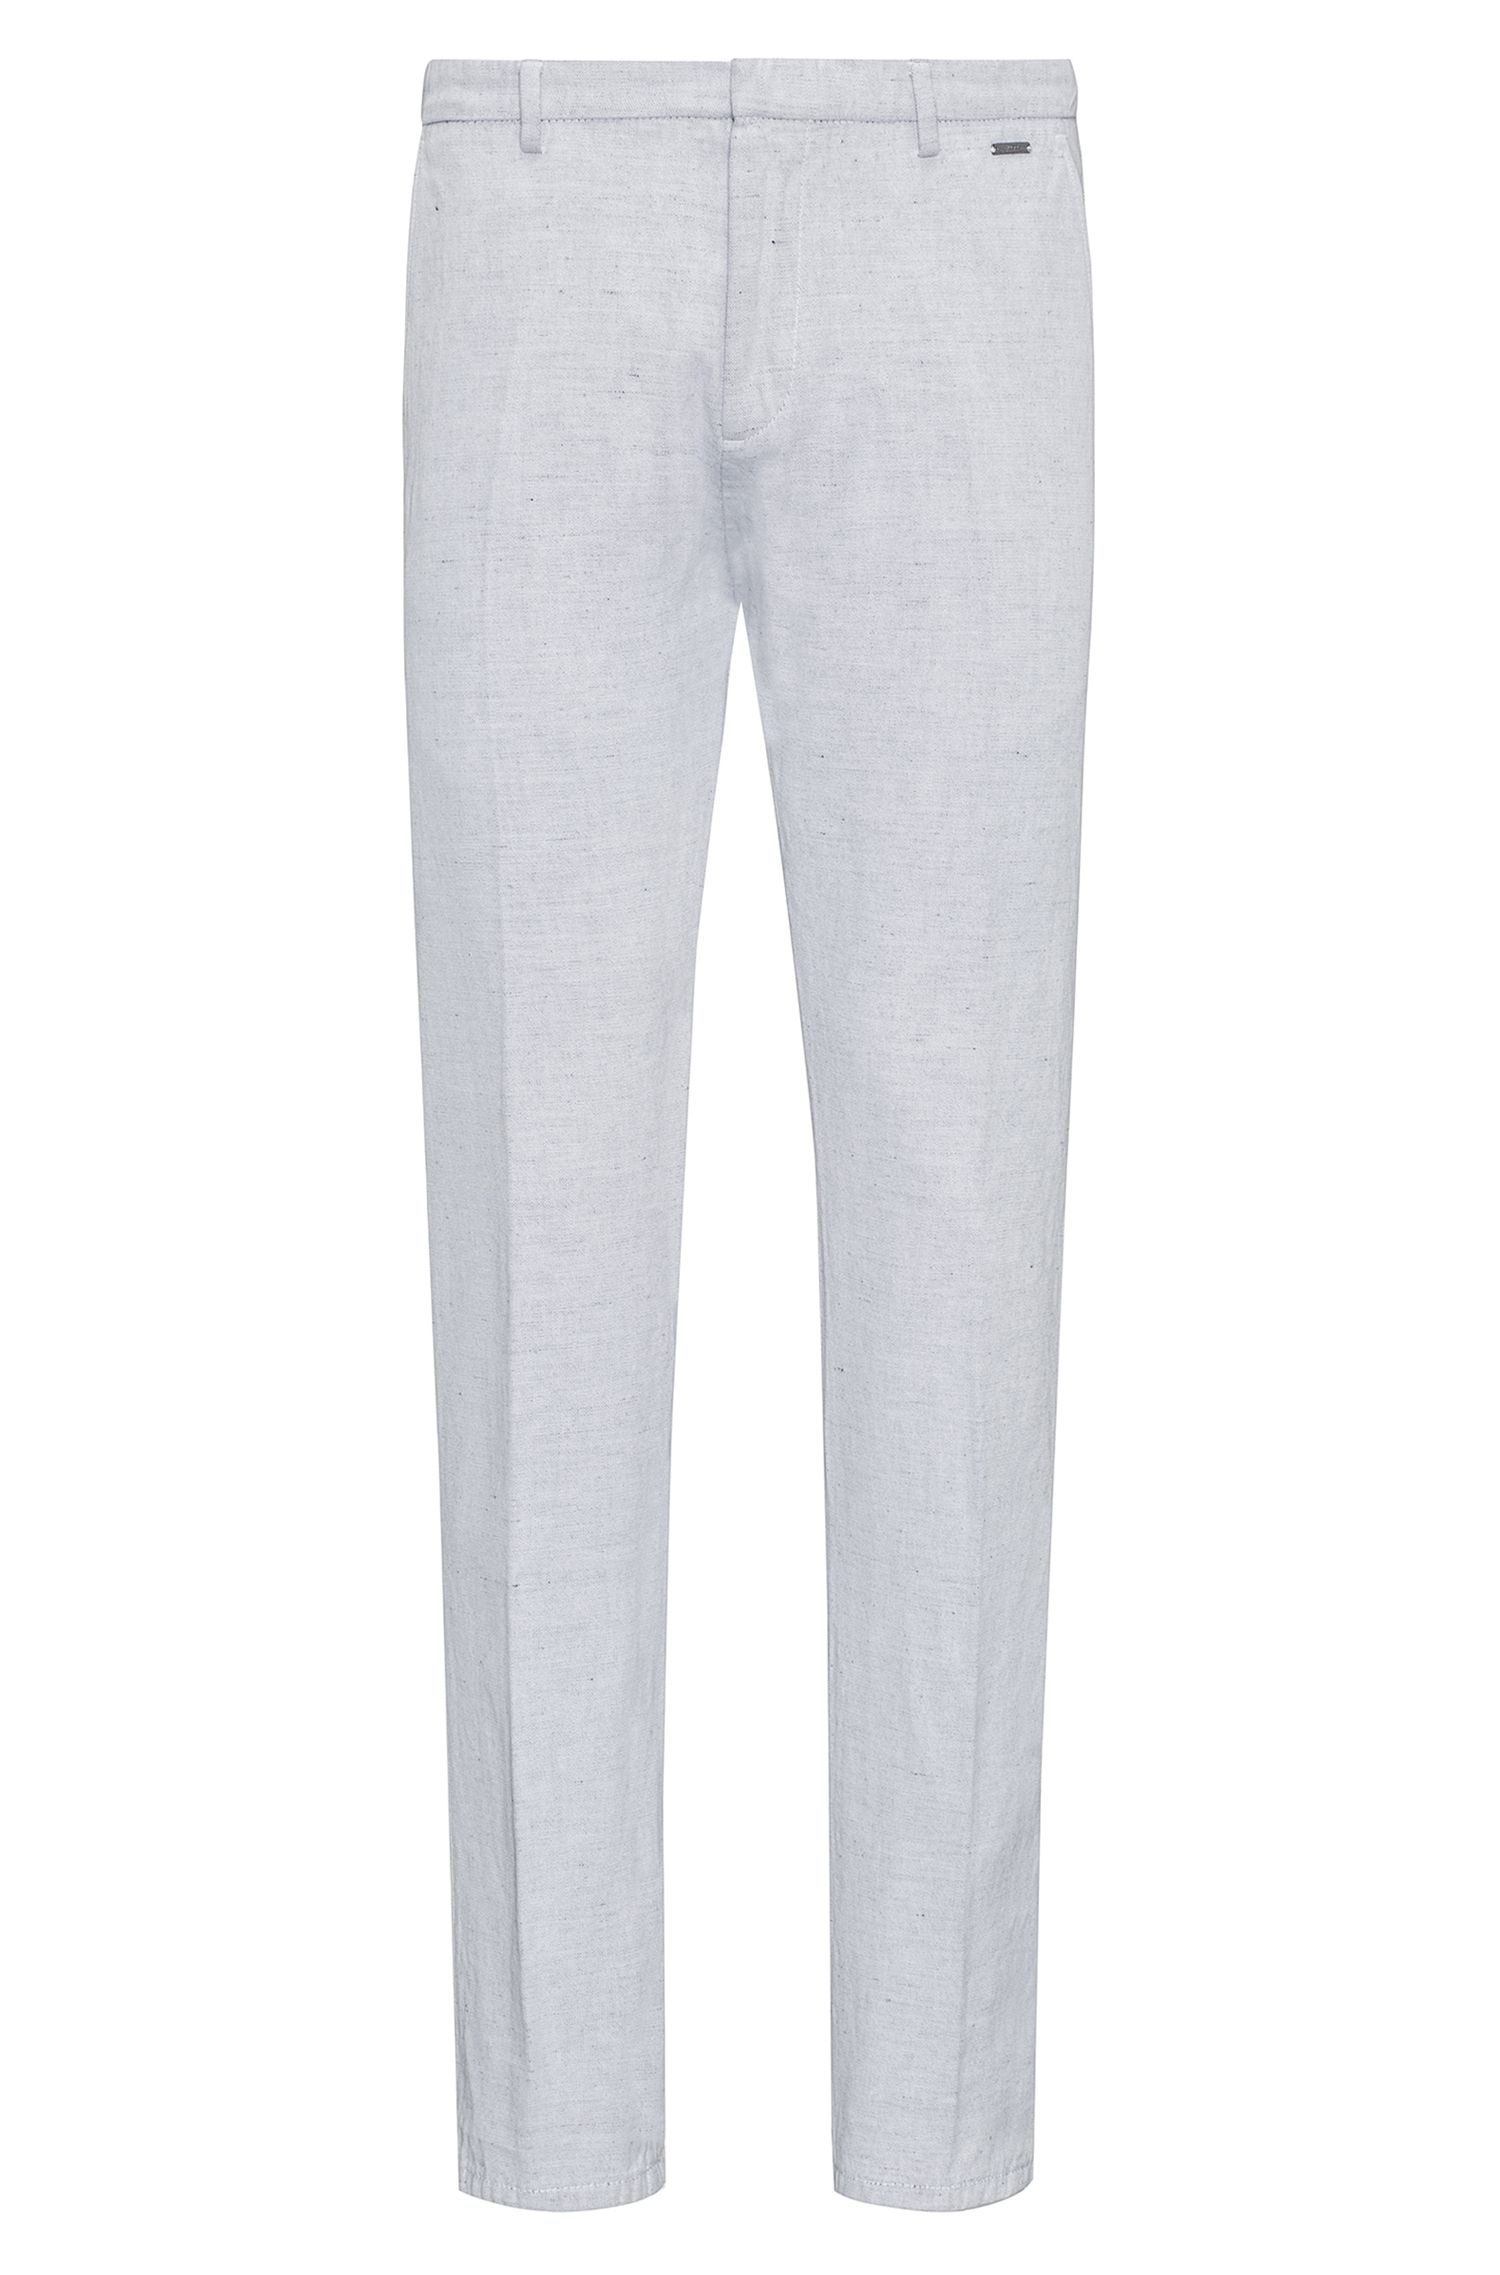 Cotton-Linen Pant, Tapered Fit   Helgo